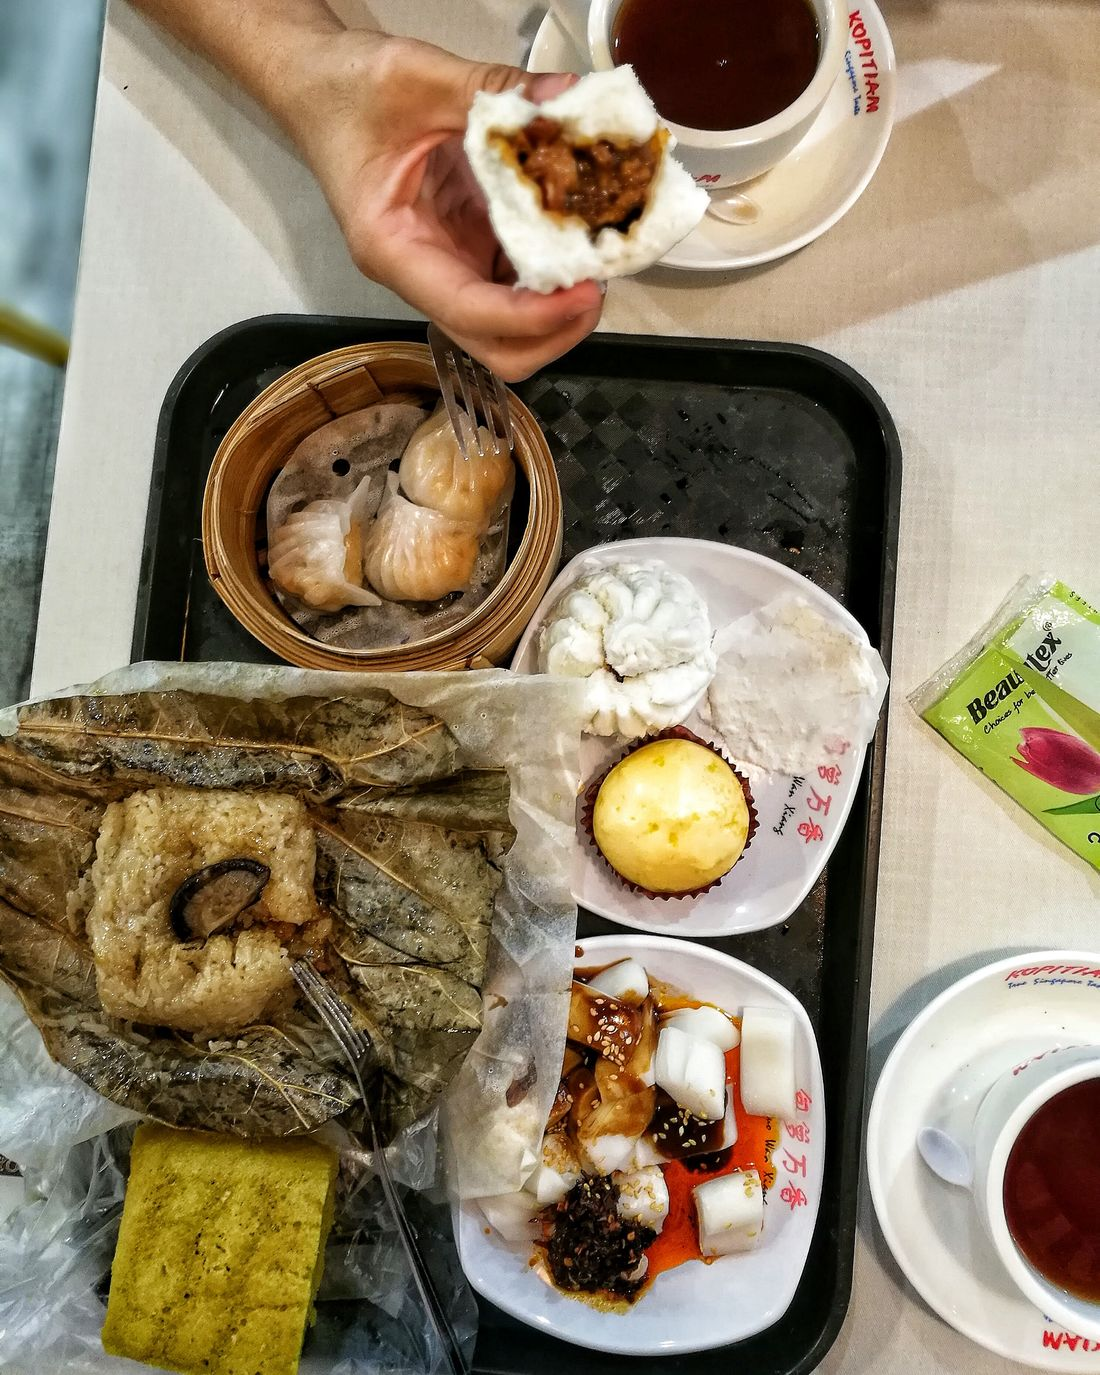 Fuel for the day... Food And Drink Food Ready-to-eat Temptation Indulgence Meal Serving Size Dimsums Asian Food Foodphotography Overhead Photography All Day Breakfast Asian Staple Food Variation Chinese Food Paos Chinese Buns Delicious Yummy Salivating Hungry Unhealthy Eating Eating Out Eating Onthetable Hand In Frame Visual Feast